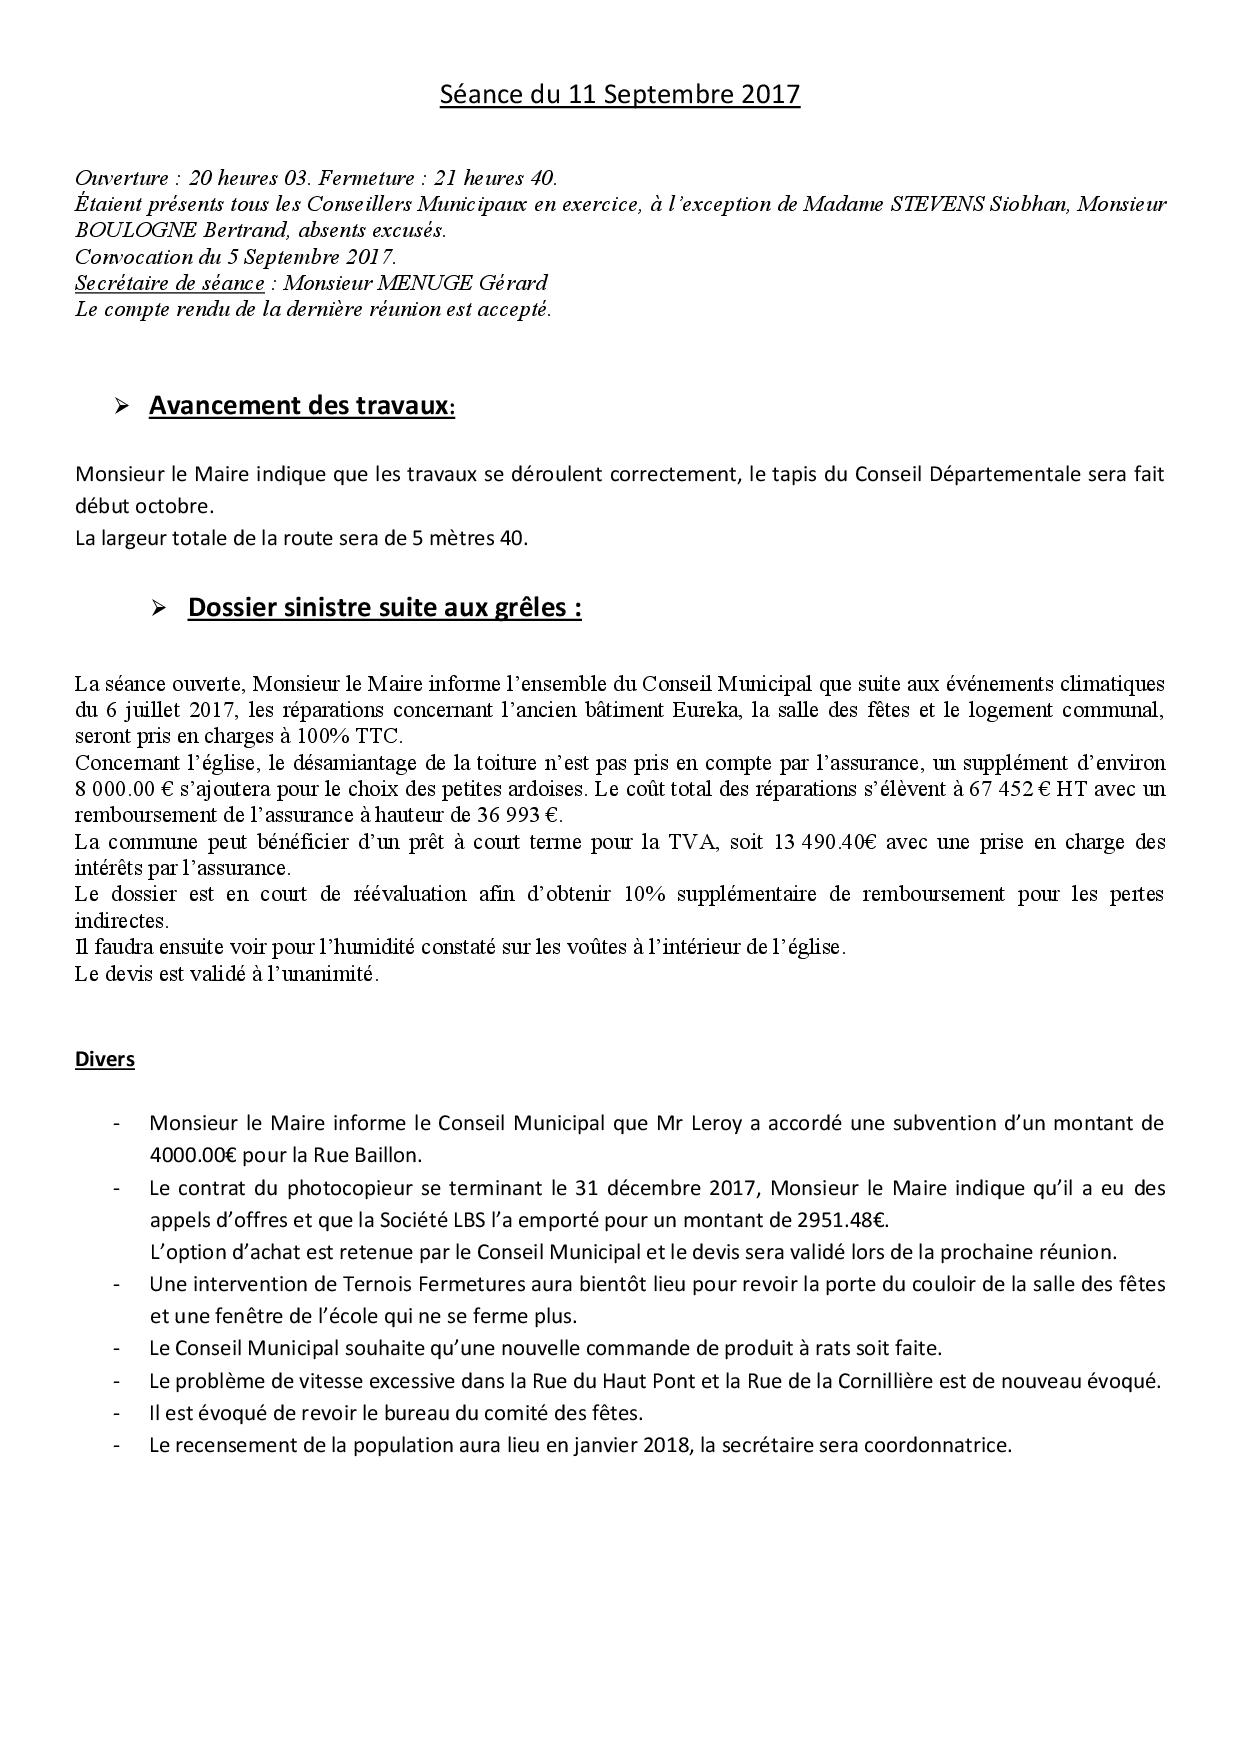 C users verhamme documents mairie doc 29122017 seance du 11 septembre 2017